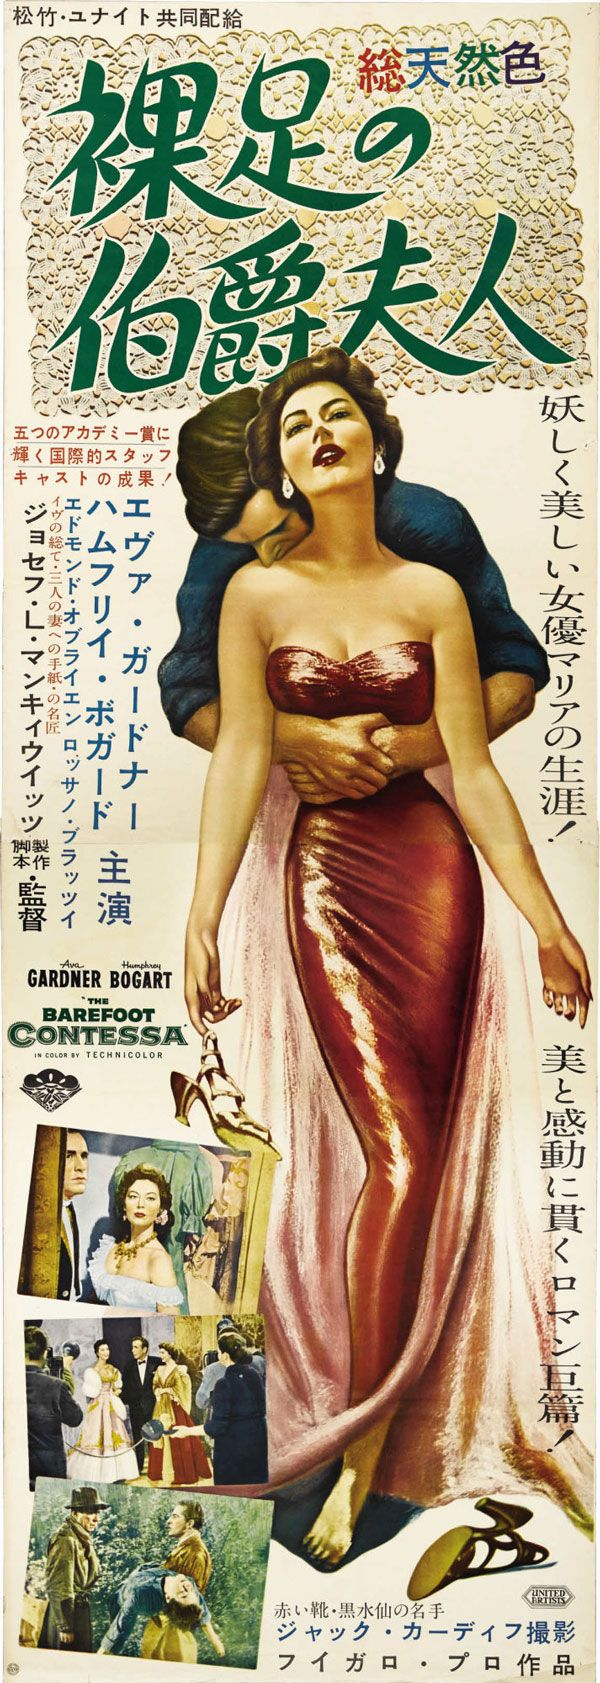 Movie Poster of the Week: The Films of Joseph L. Mankiewicz on Notebook | MUBI |  Above: Japanese poster for The Barefoot Contessa (Joseph L. Mankiewicz, USA, 1954).